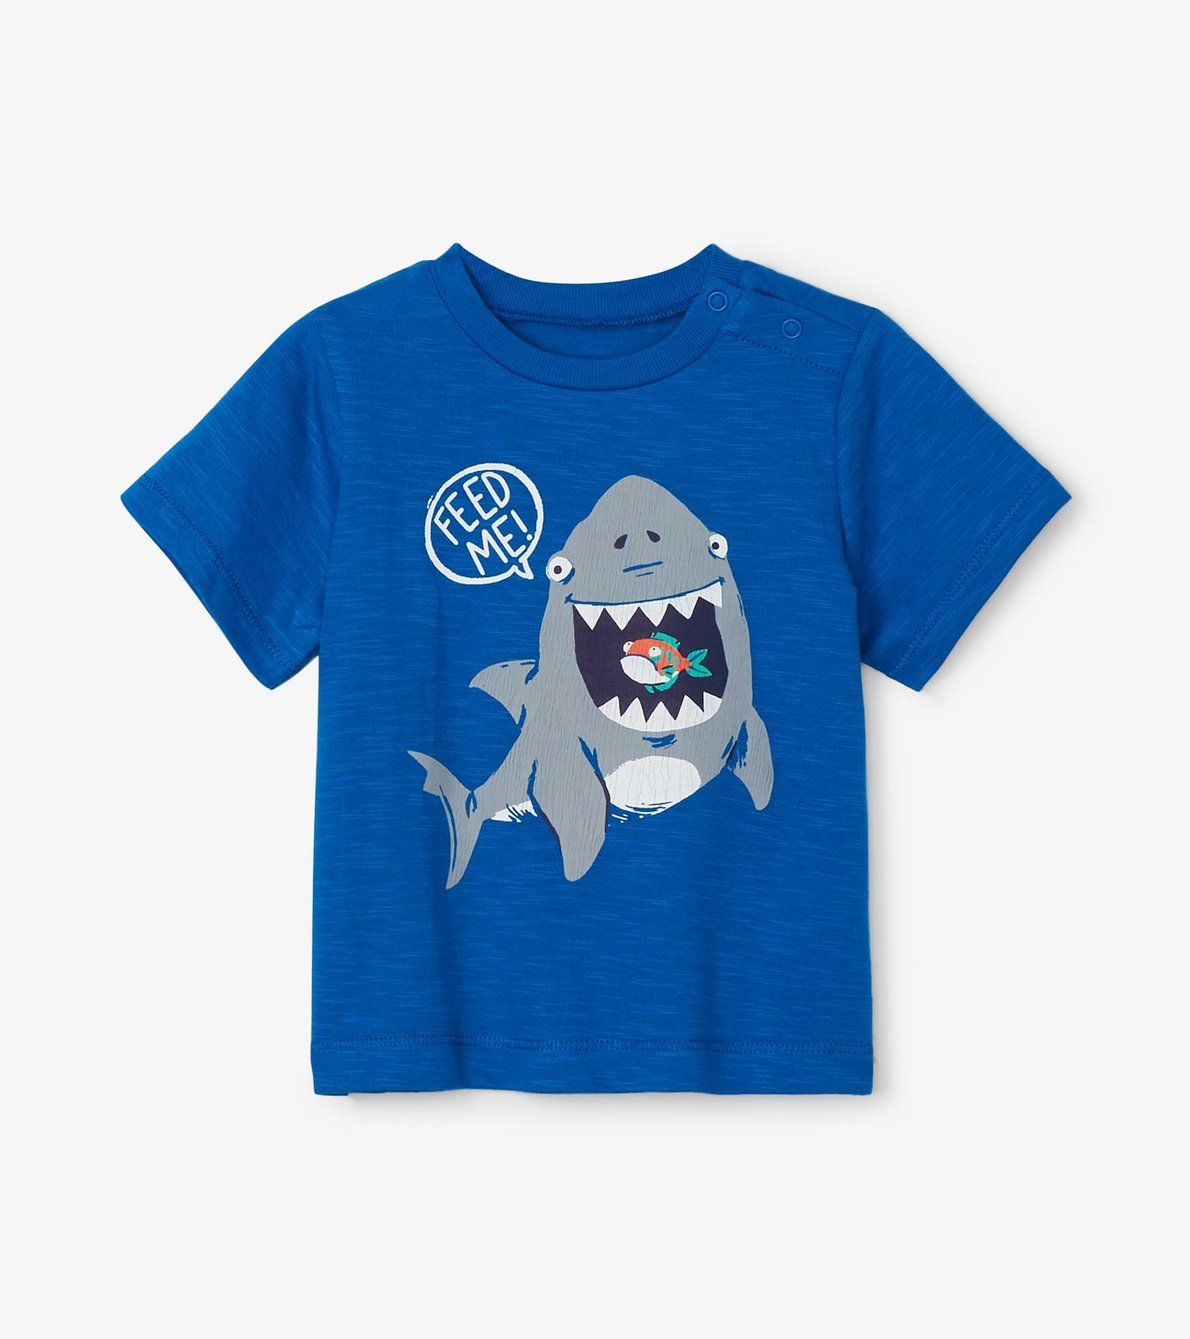 View larger image of Hungry Shark Baby Graphic Tee